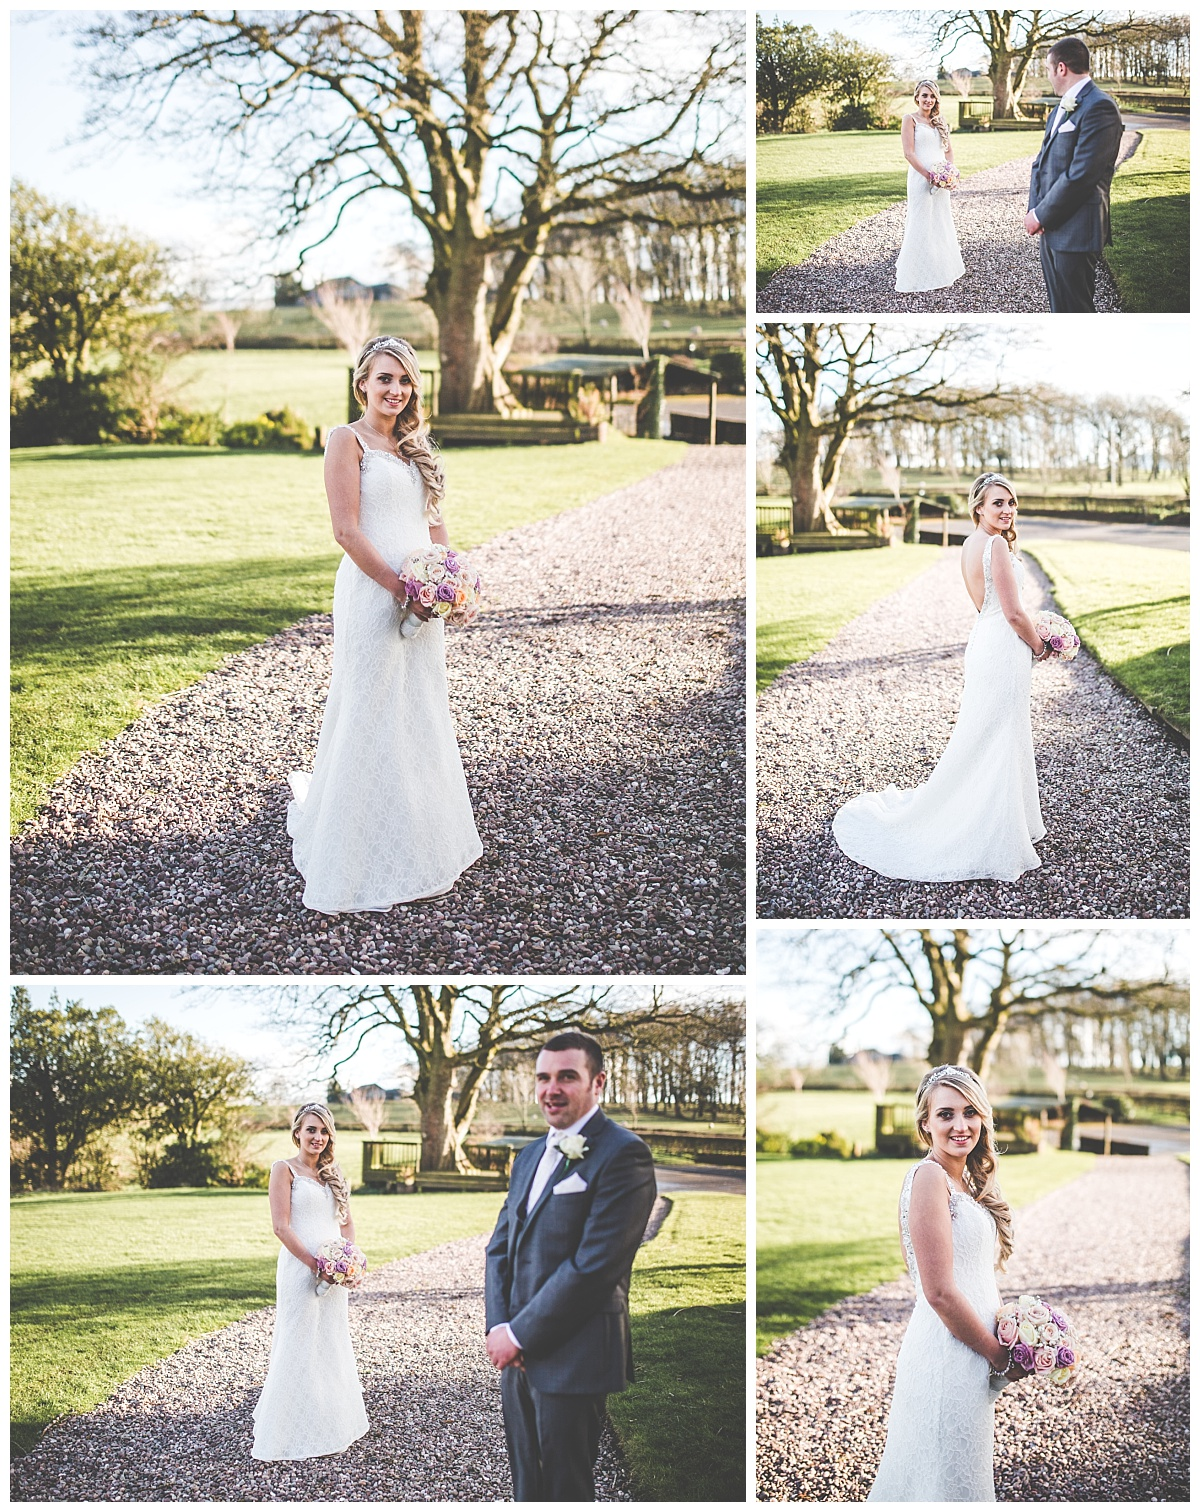 Stirk House Hotel Wedding - Ribble Valley Manchester Wedding Photographer (26)